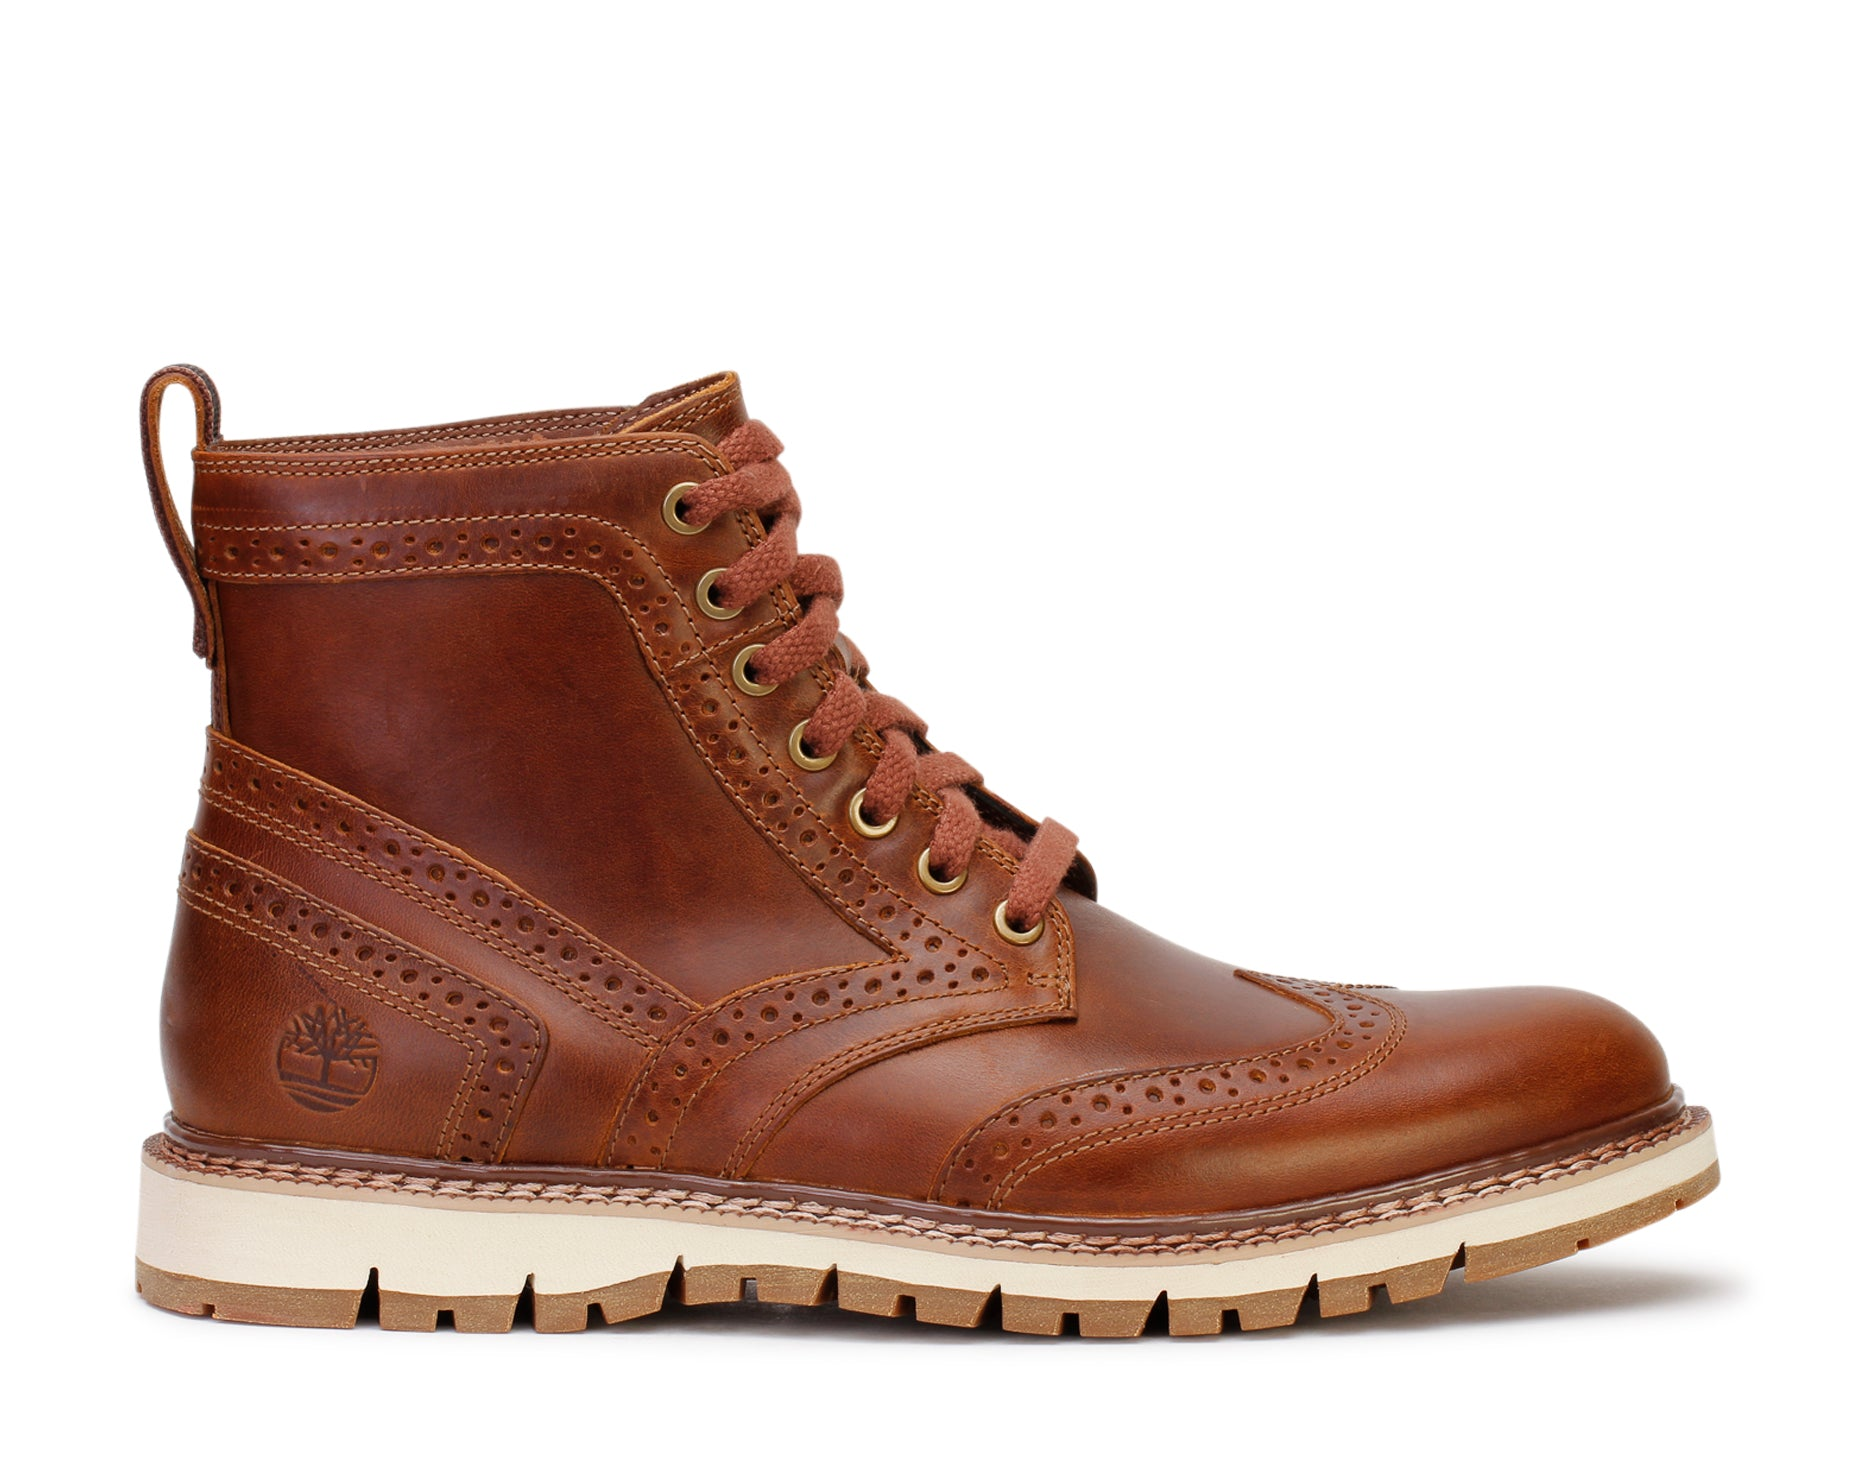 timberland-mens-britton-hill-wingtip-6-inch-boots-medium-brown-a1mh3-main